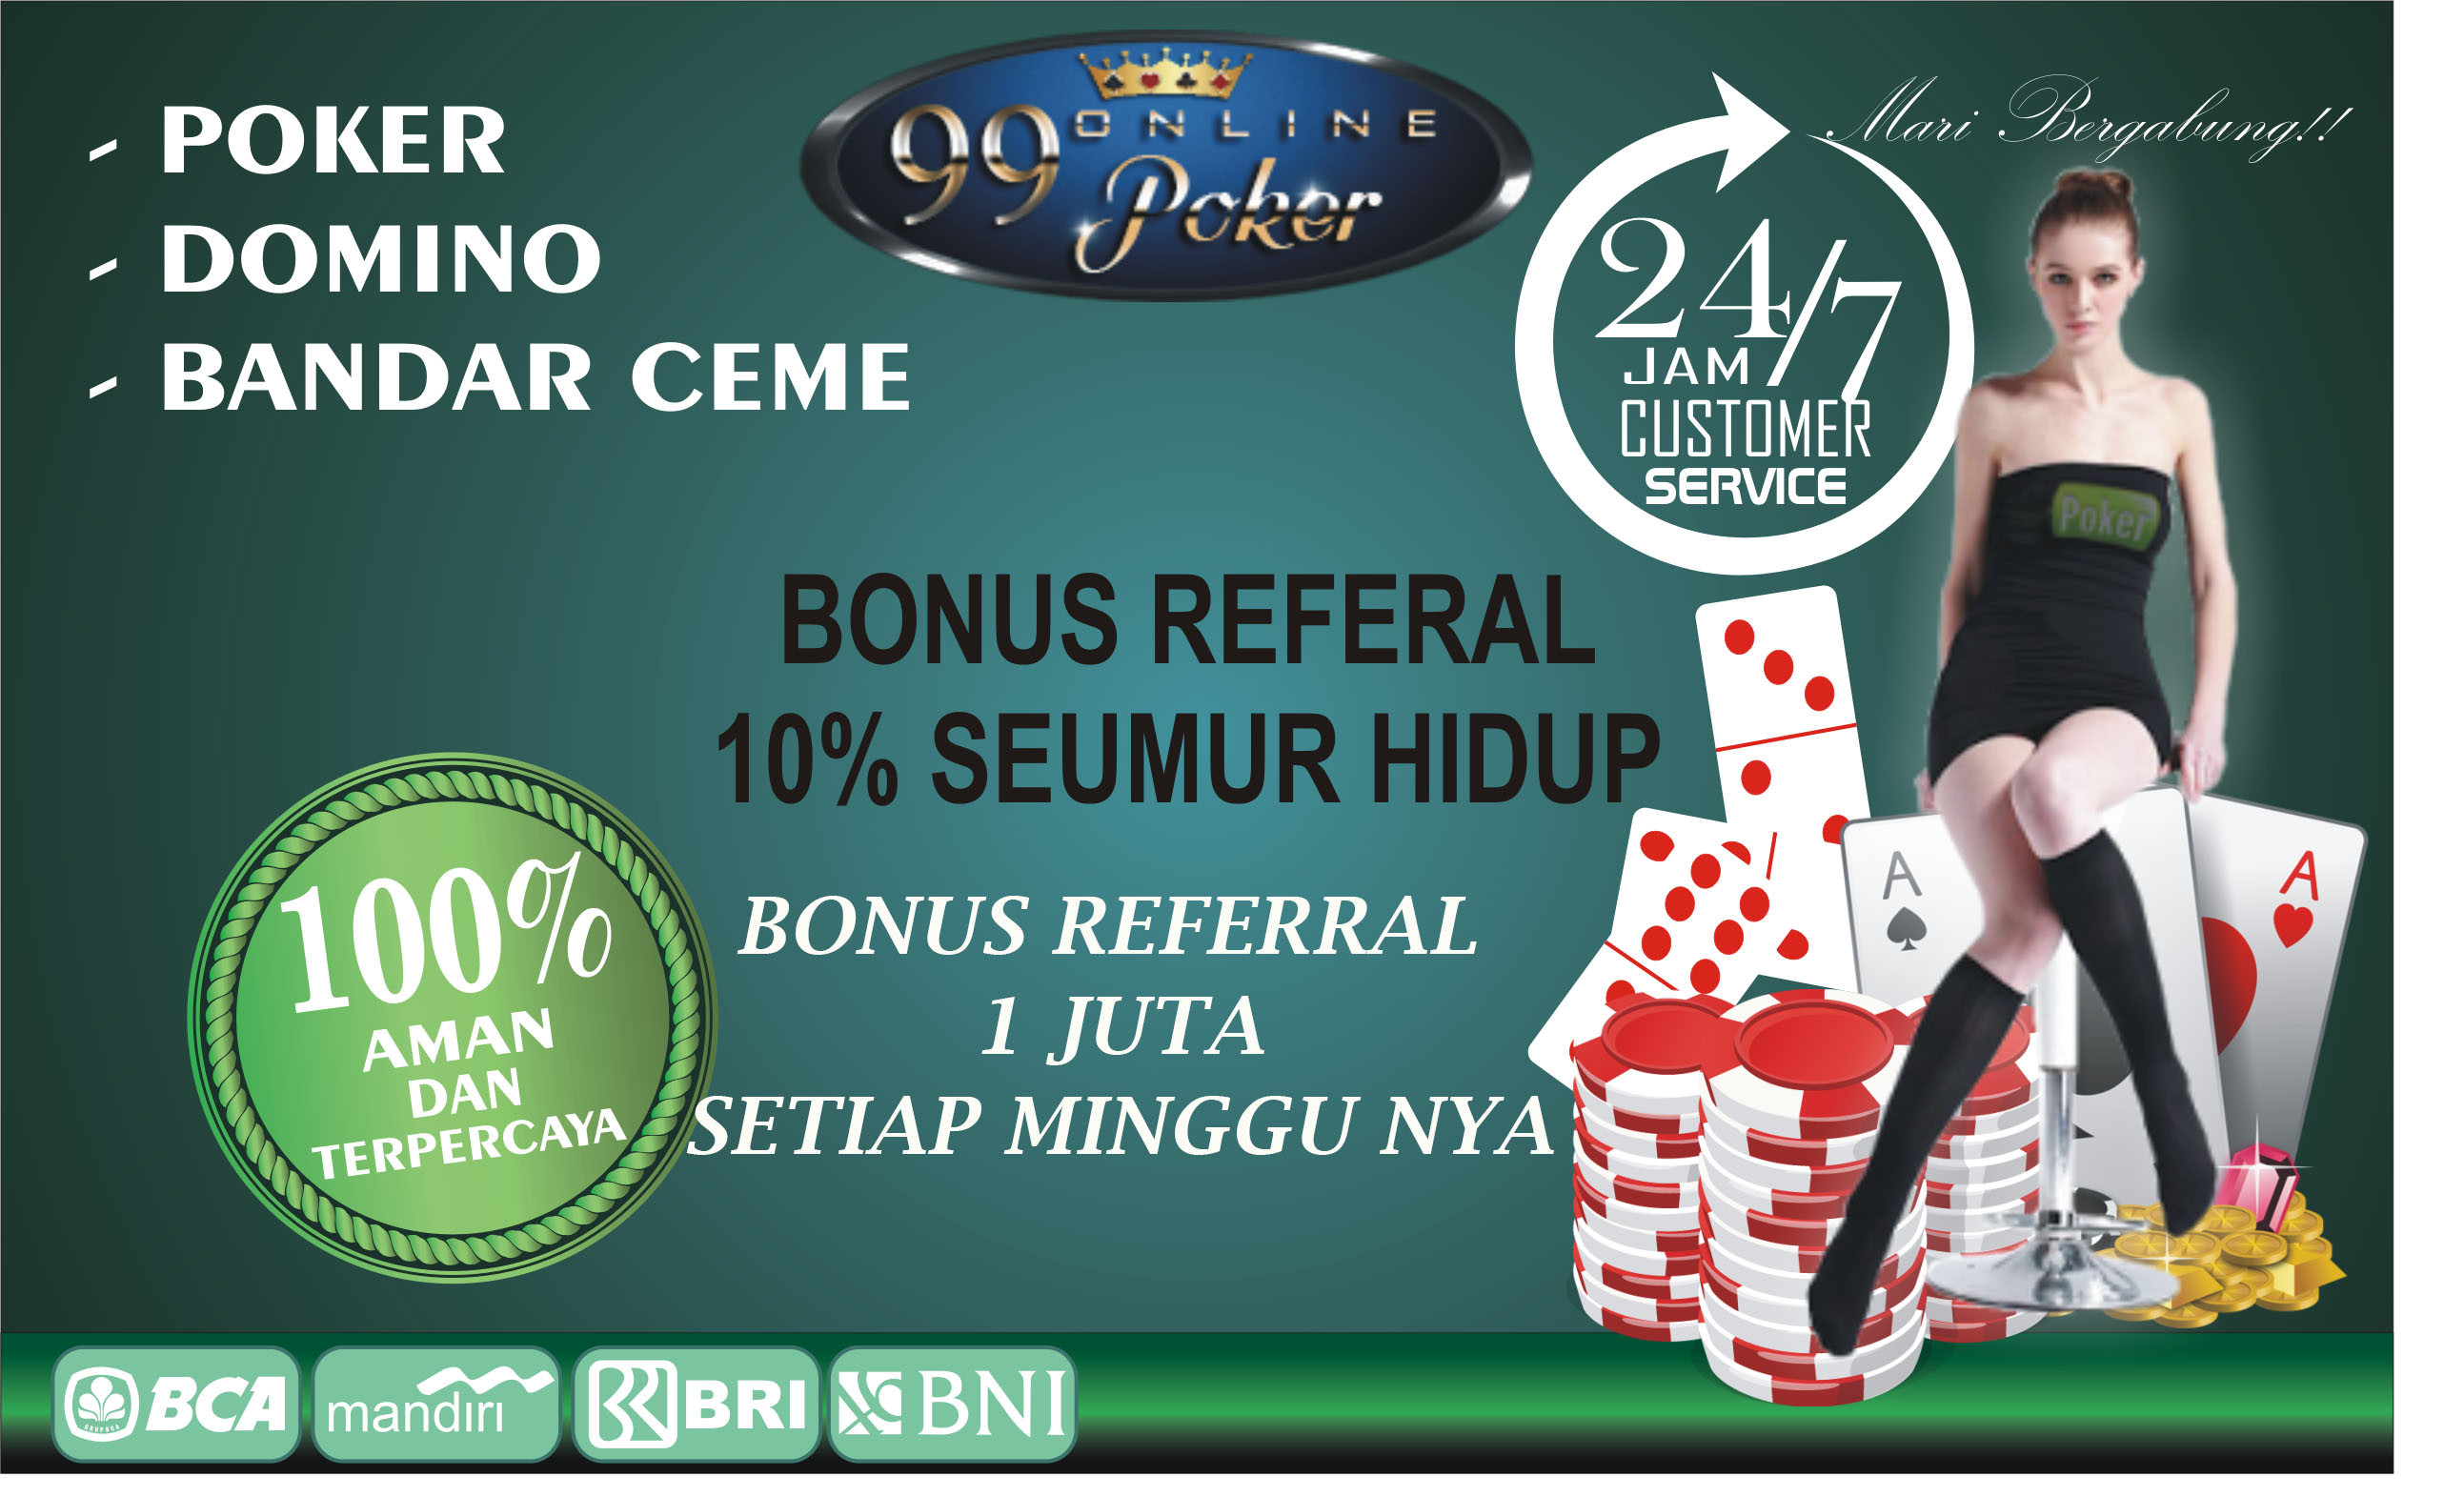 sarana99 com agen texas poker dan domino on line indonesia terpercaya